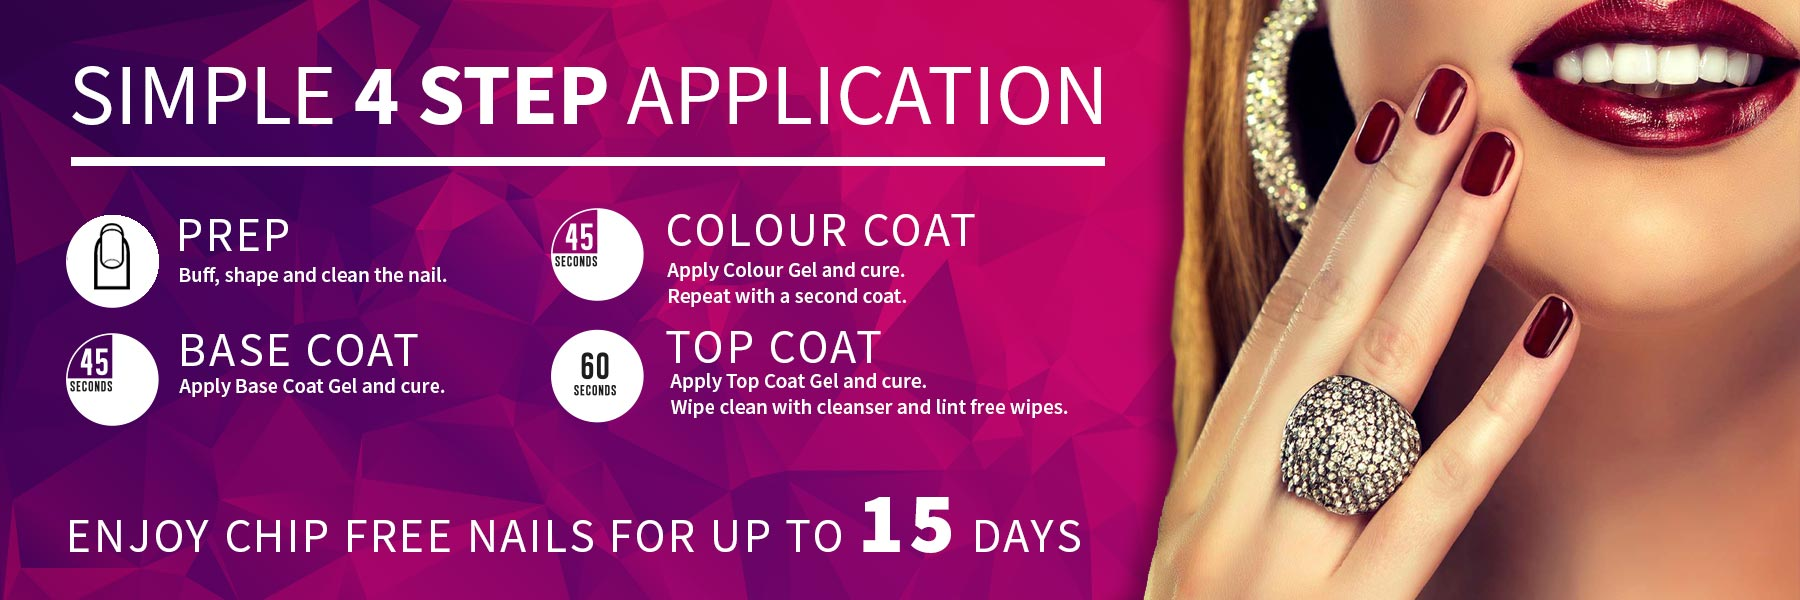 nailnation-homepage-banner-4-step-application